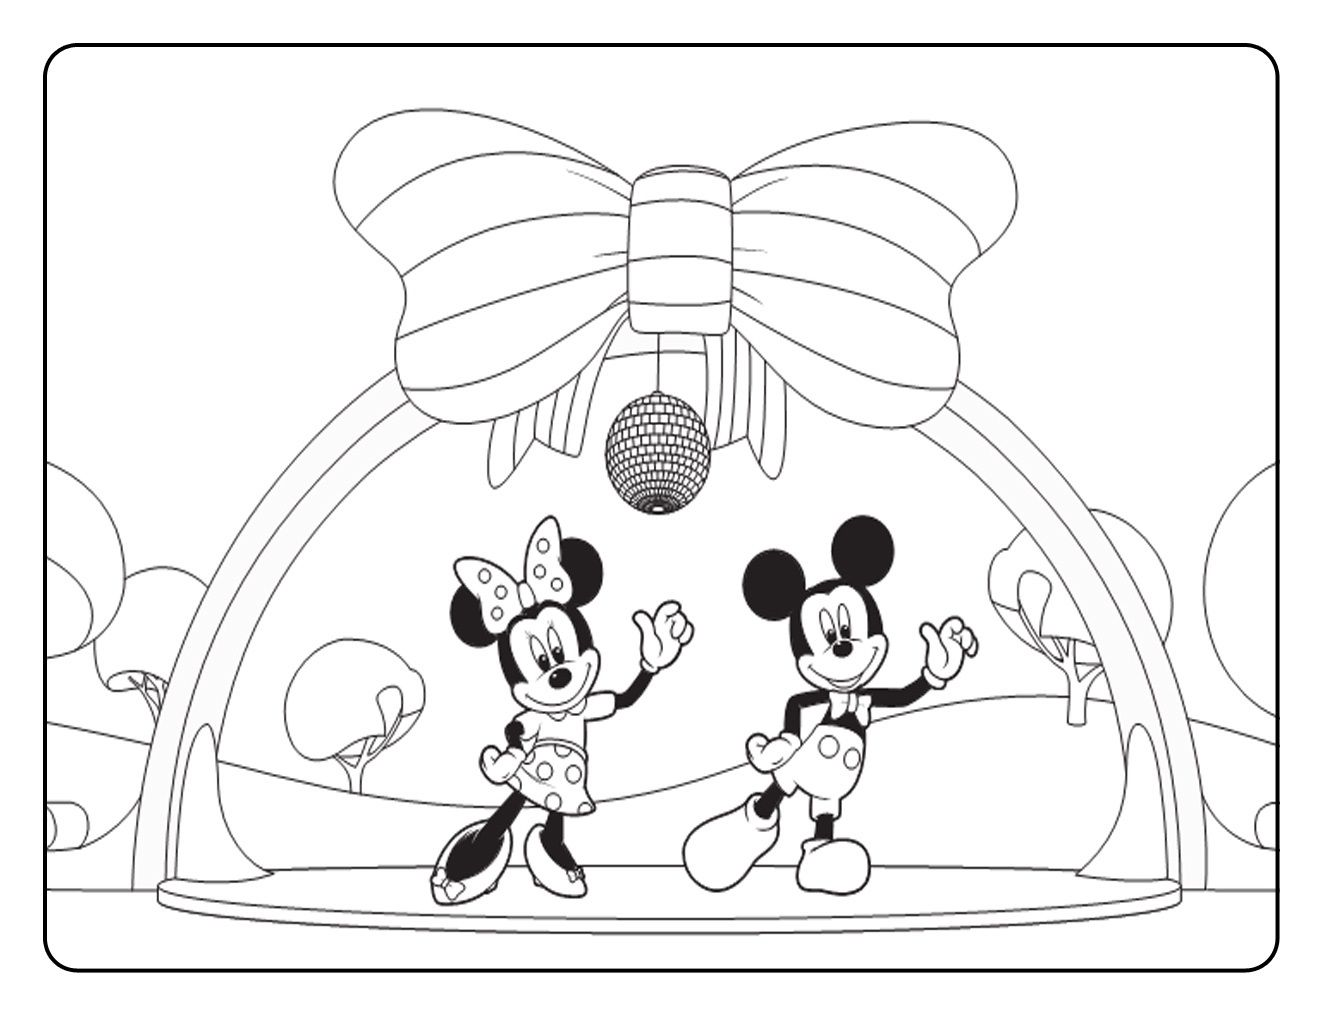 Coloring Page Mickey Mouse Jpg 1320 1020 Mickey Mouse Coloring Pages Mickey Mouse Drawings Disney Coloring Pages